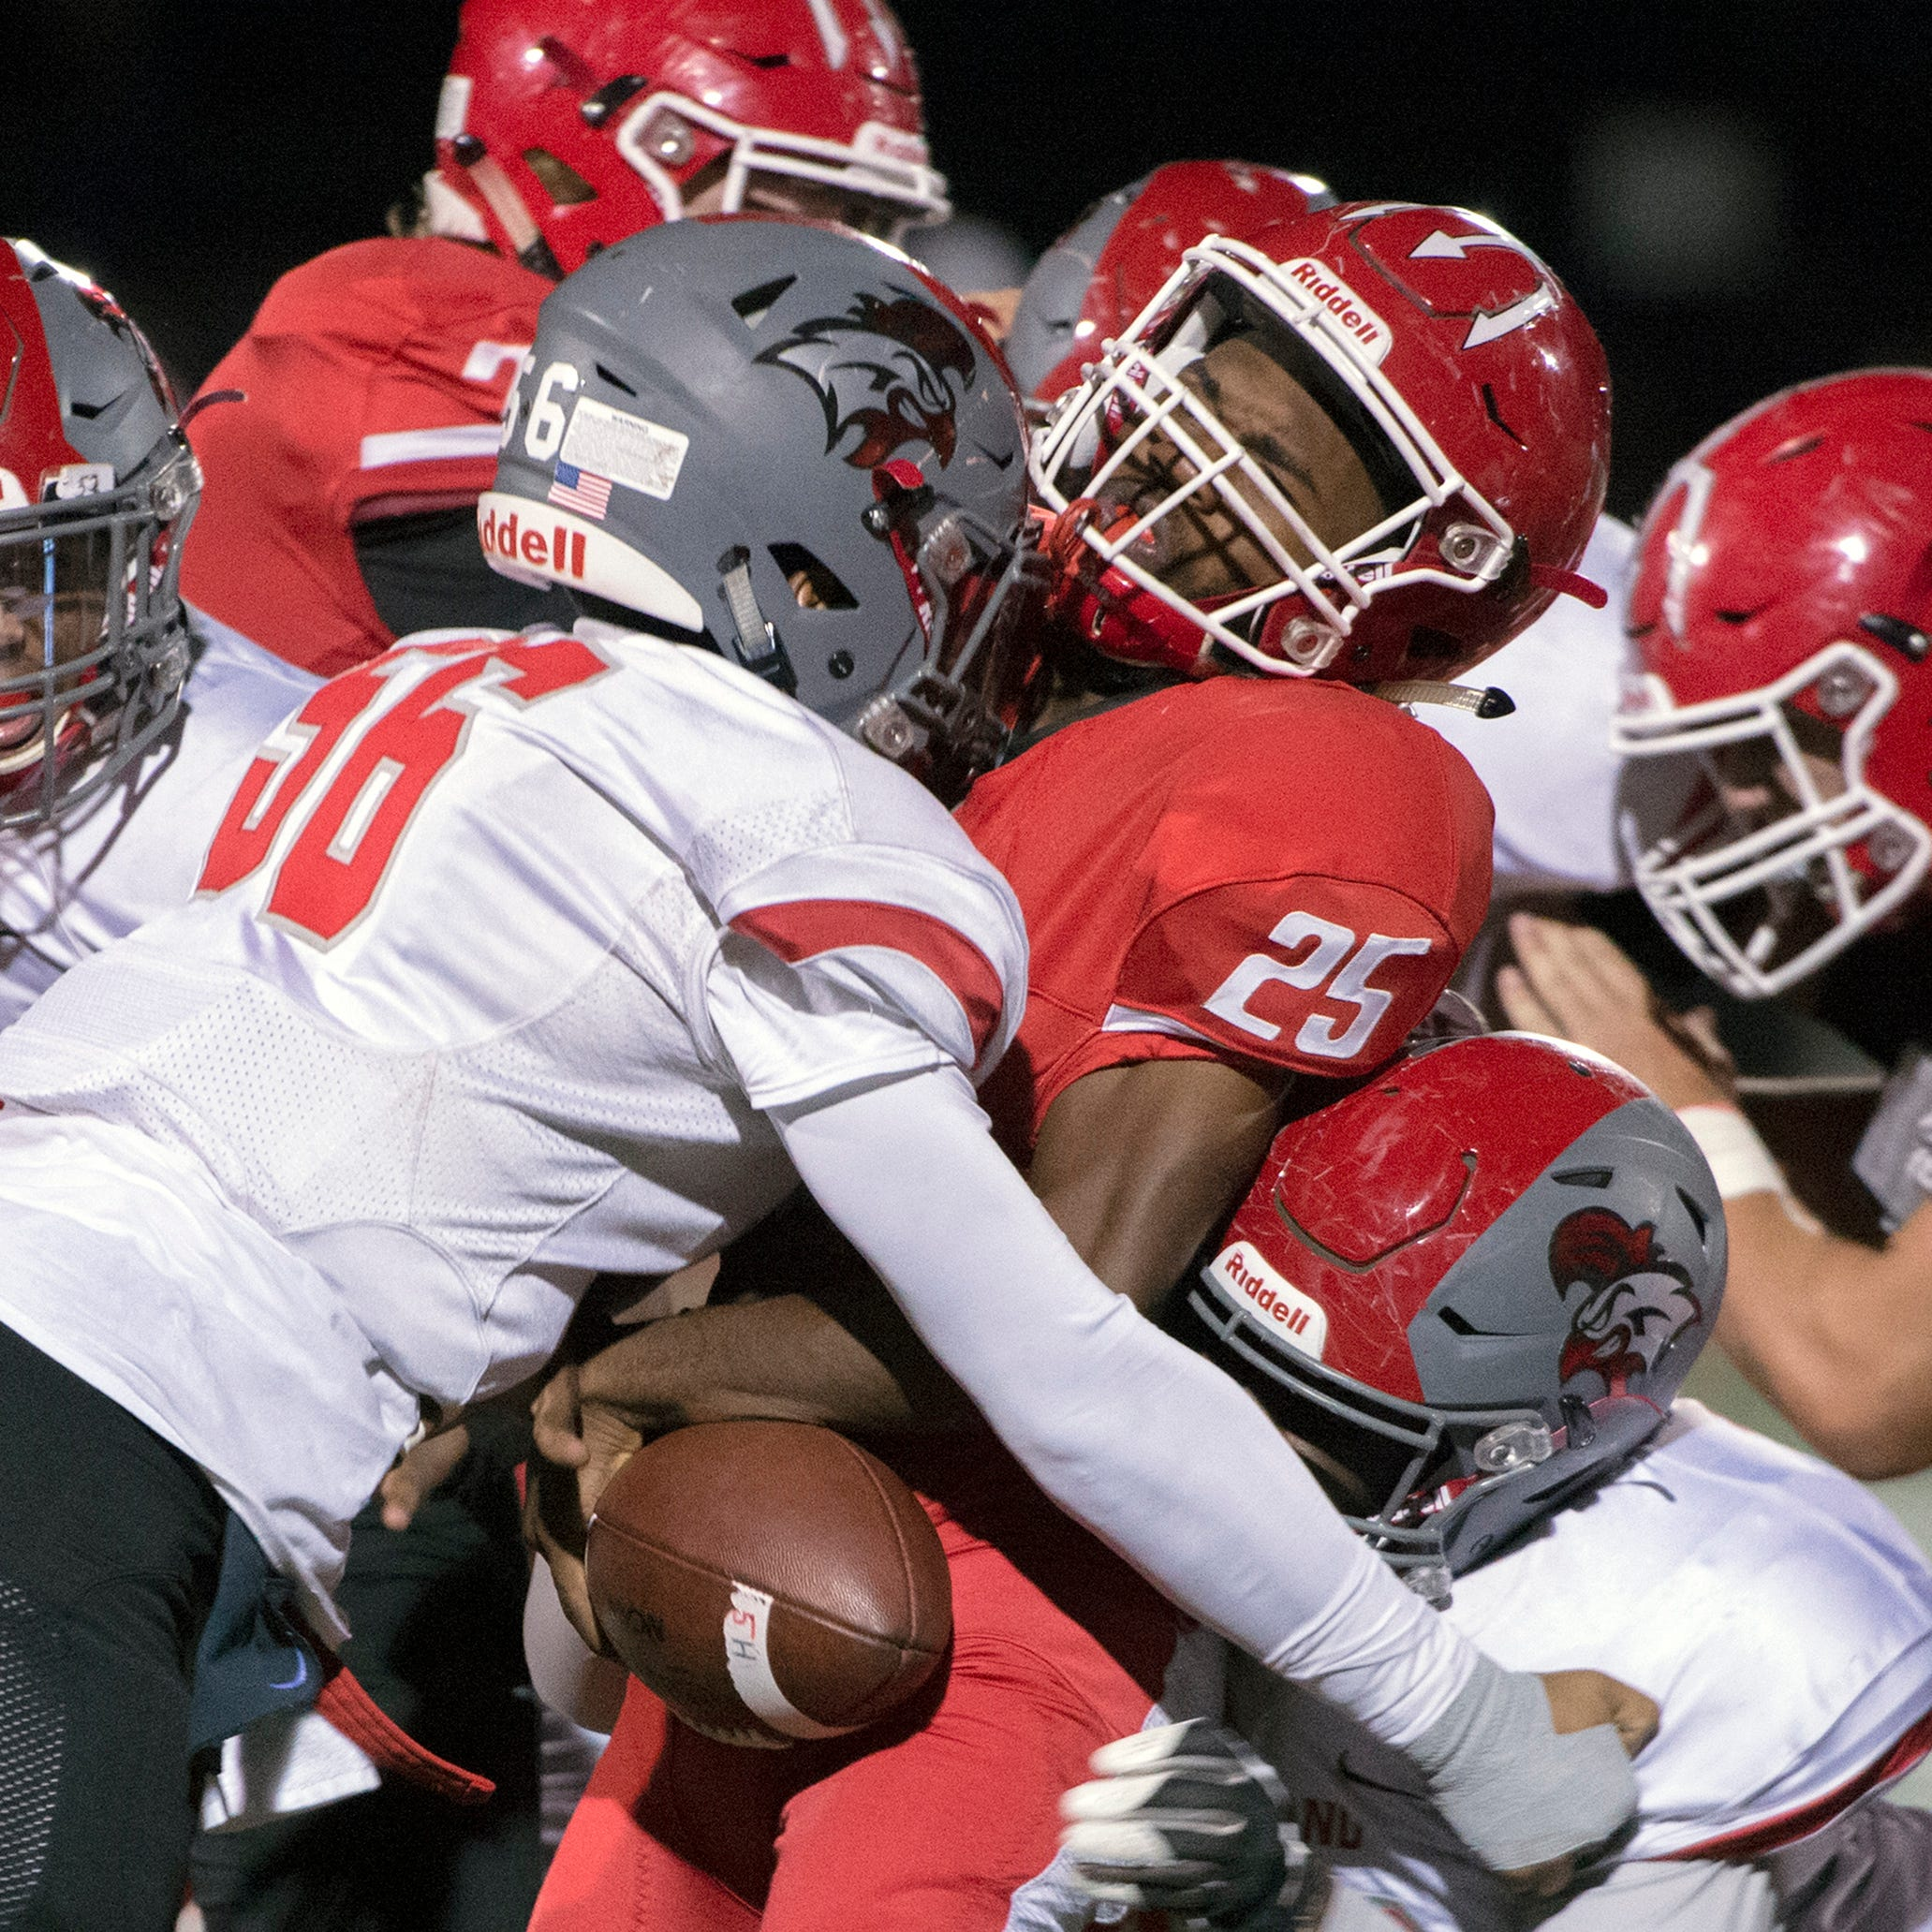 H.S. football: Vineland's postseason chances take hit with loss at RV